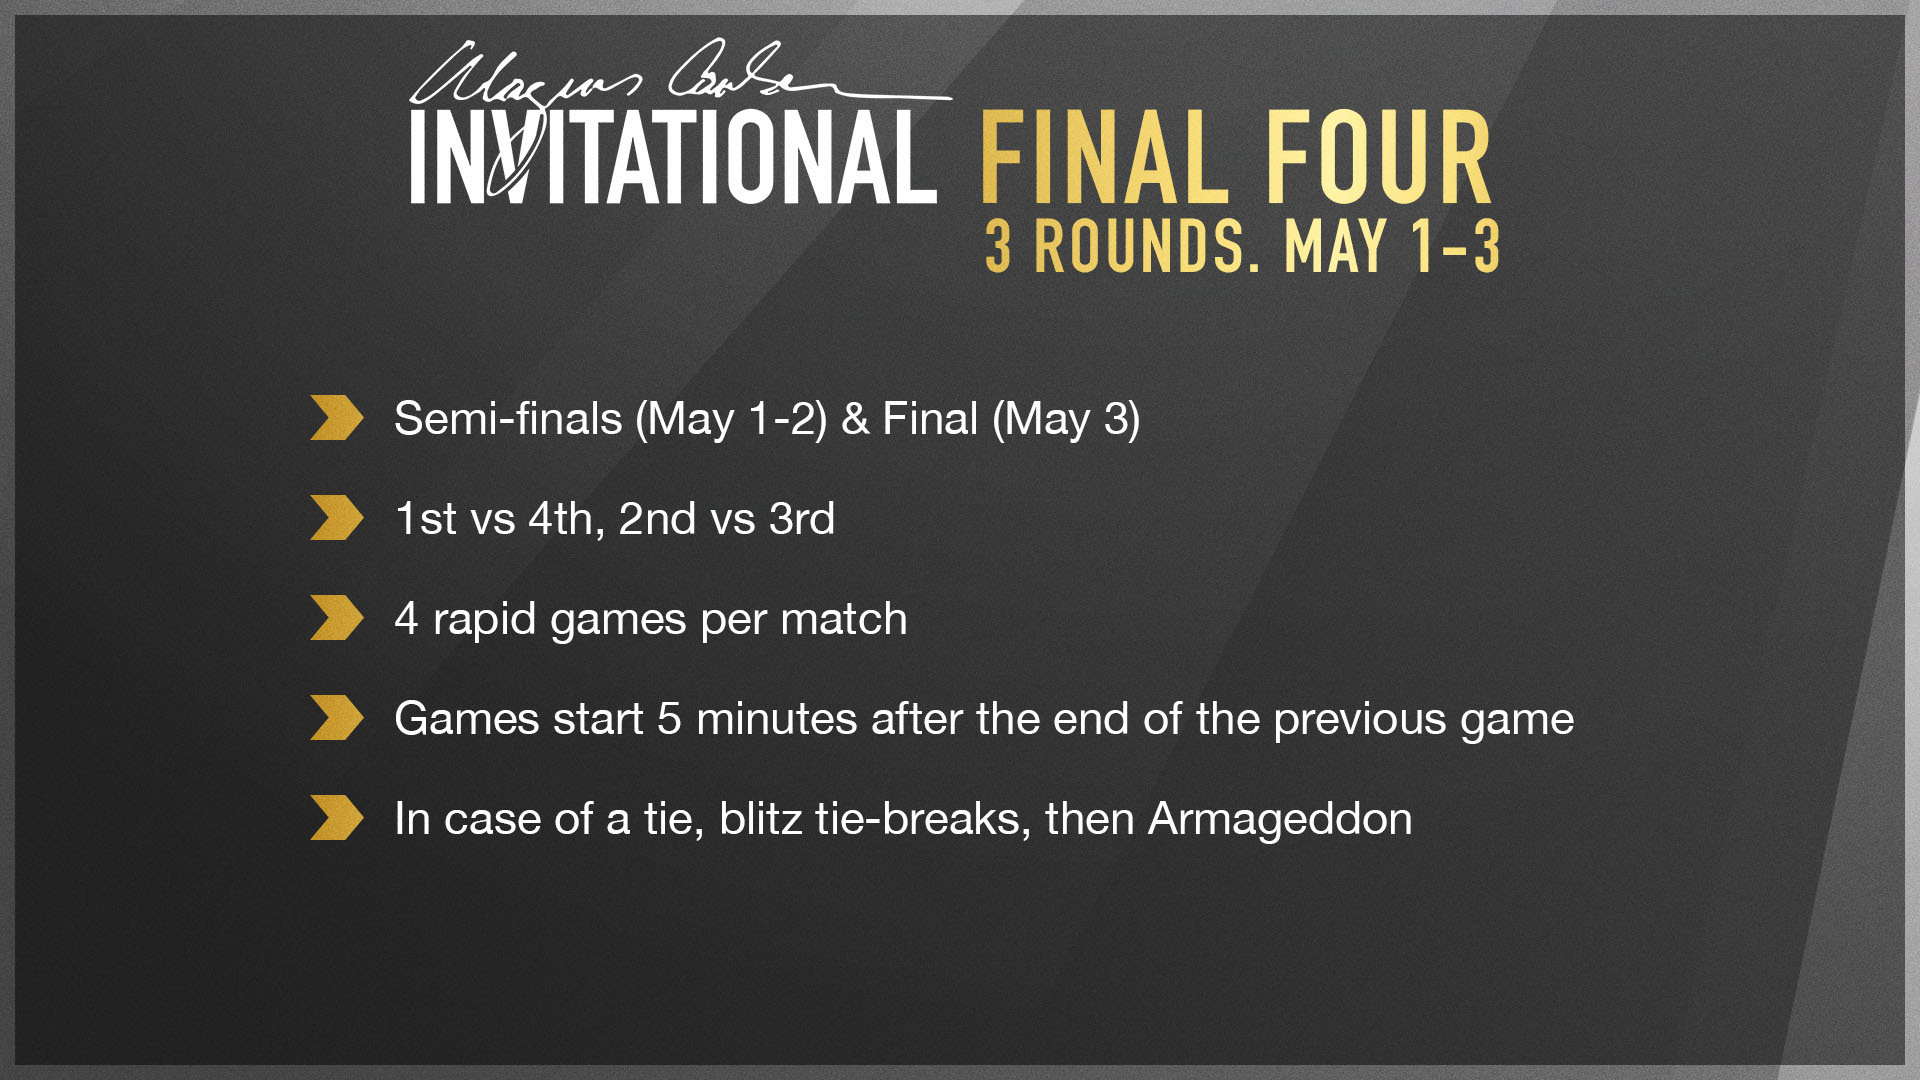 final four rules